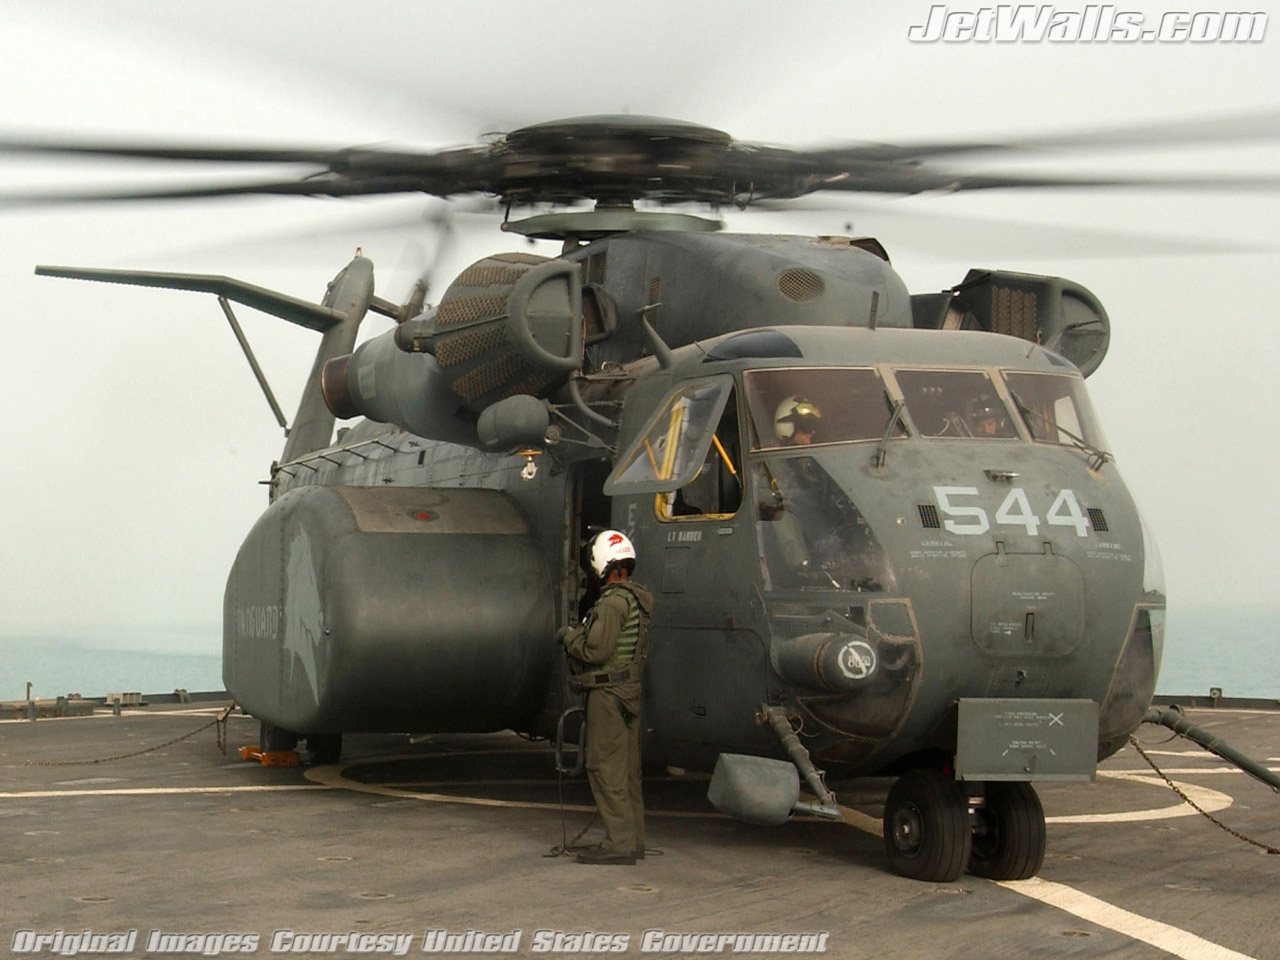 """MH-53 Sea Dragon"" - Wallpaper No. 77 of 101. Right click for saving options."